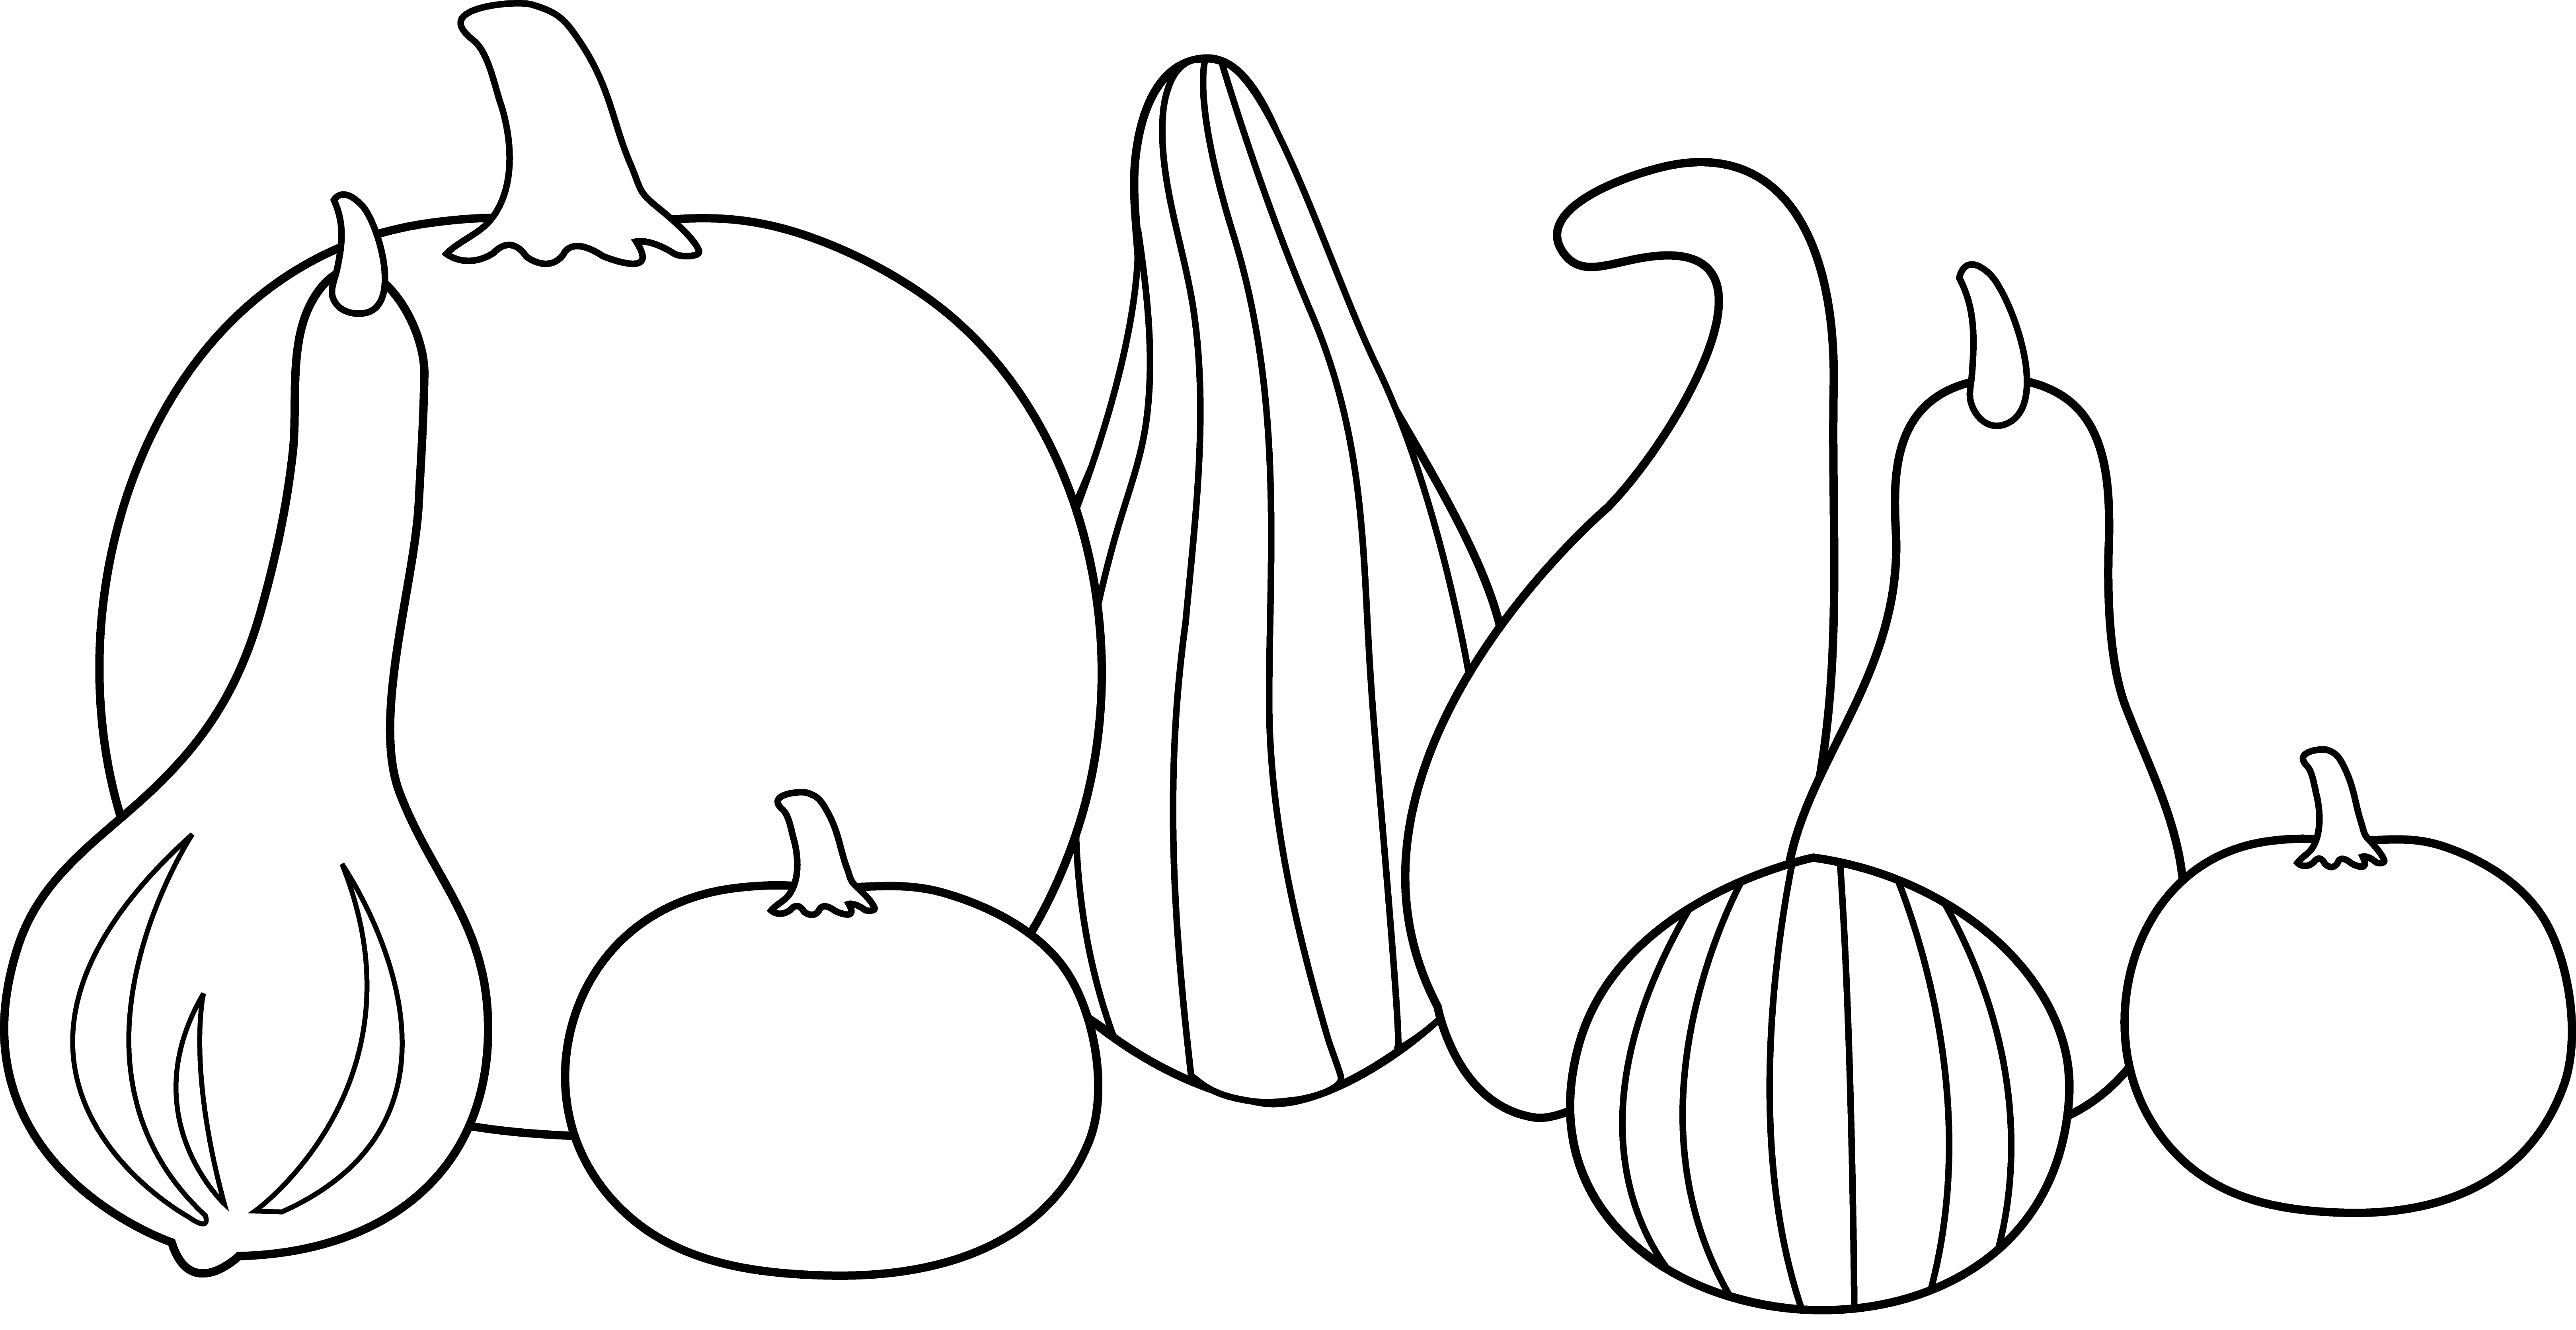 Thanksgiving pumpkins and gords clipart jpg black and white stock Gourd Clipart little pumpkin - Free Clipart on Dumielauxepices.net jpg black and white stock